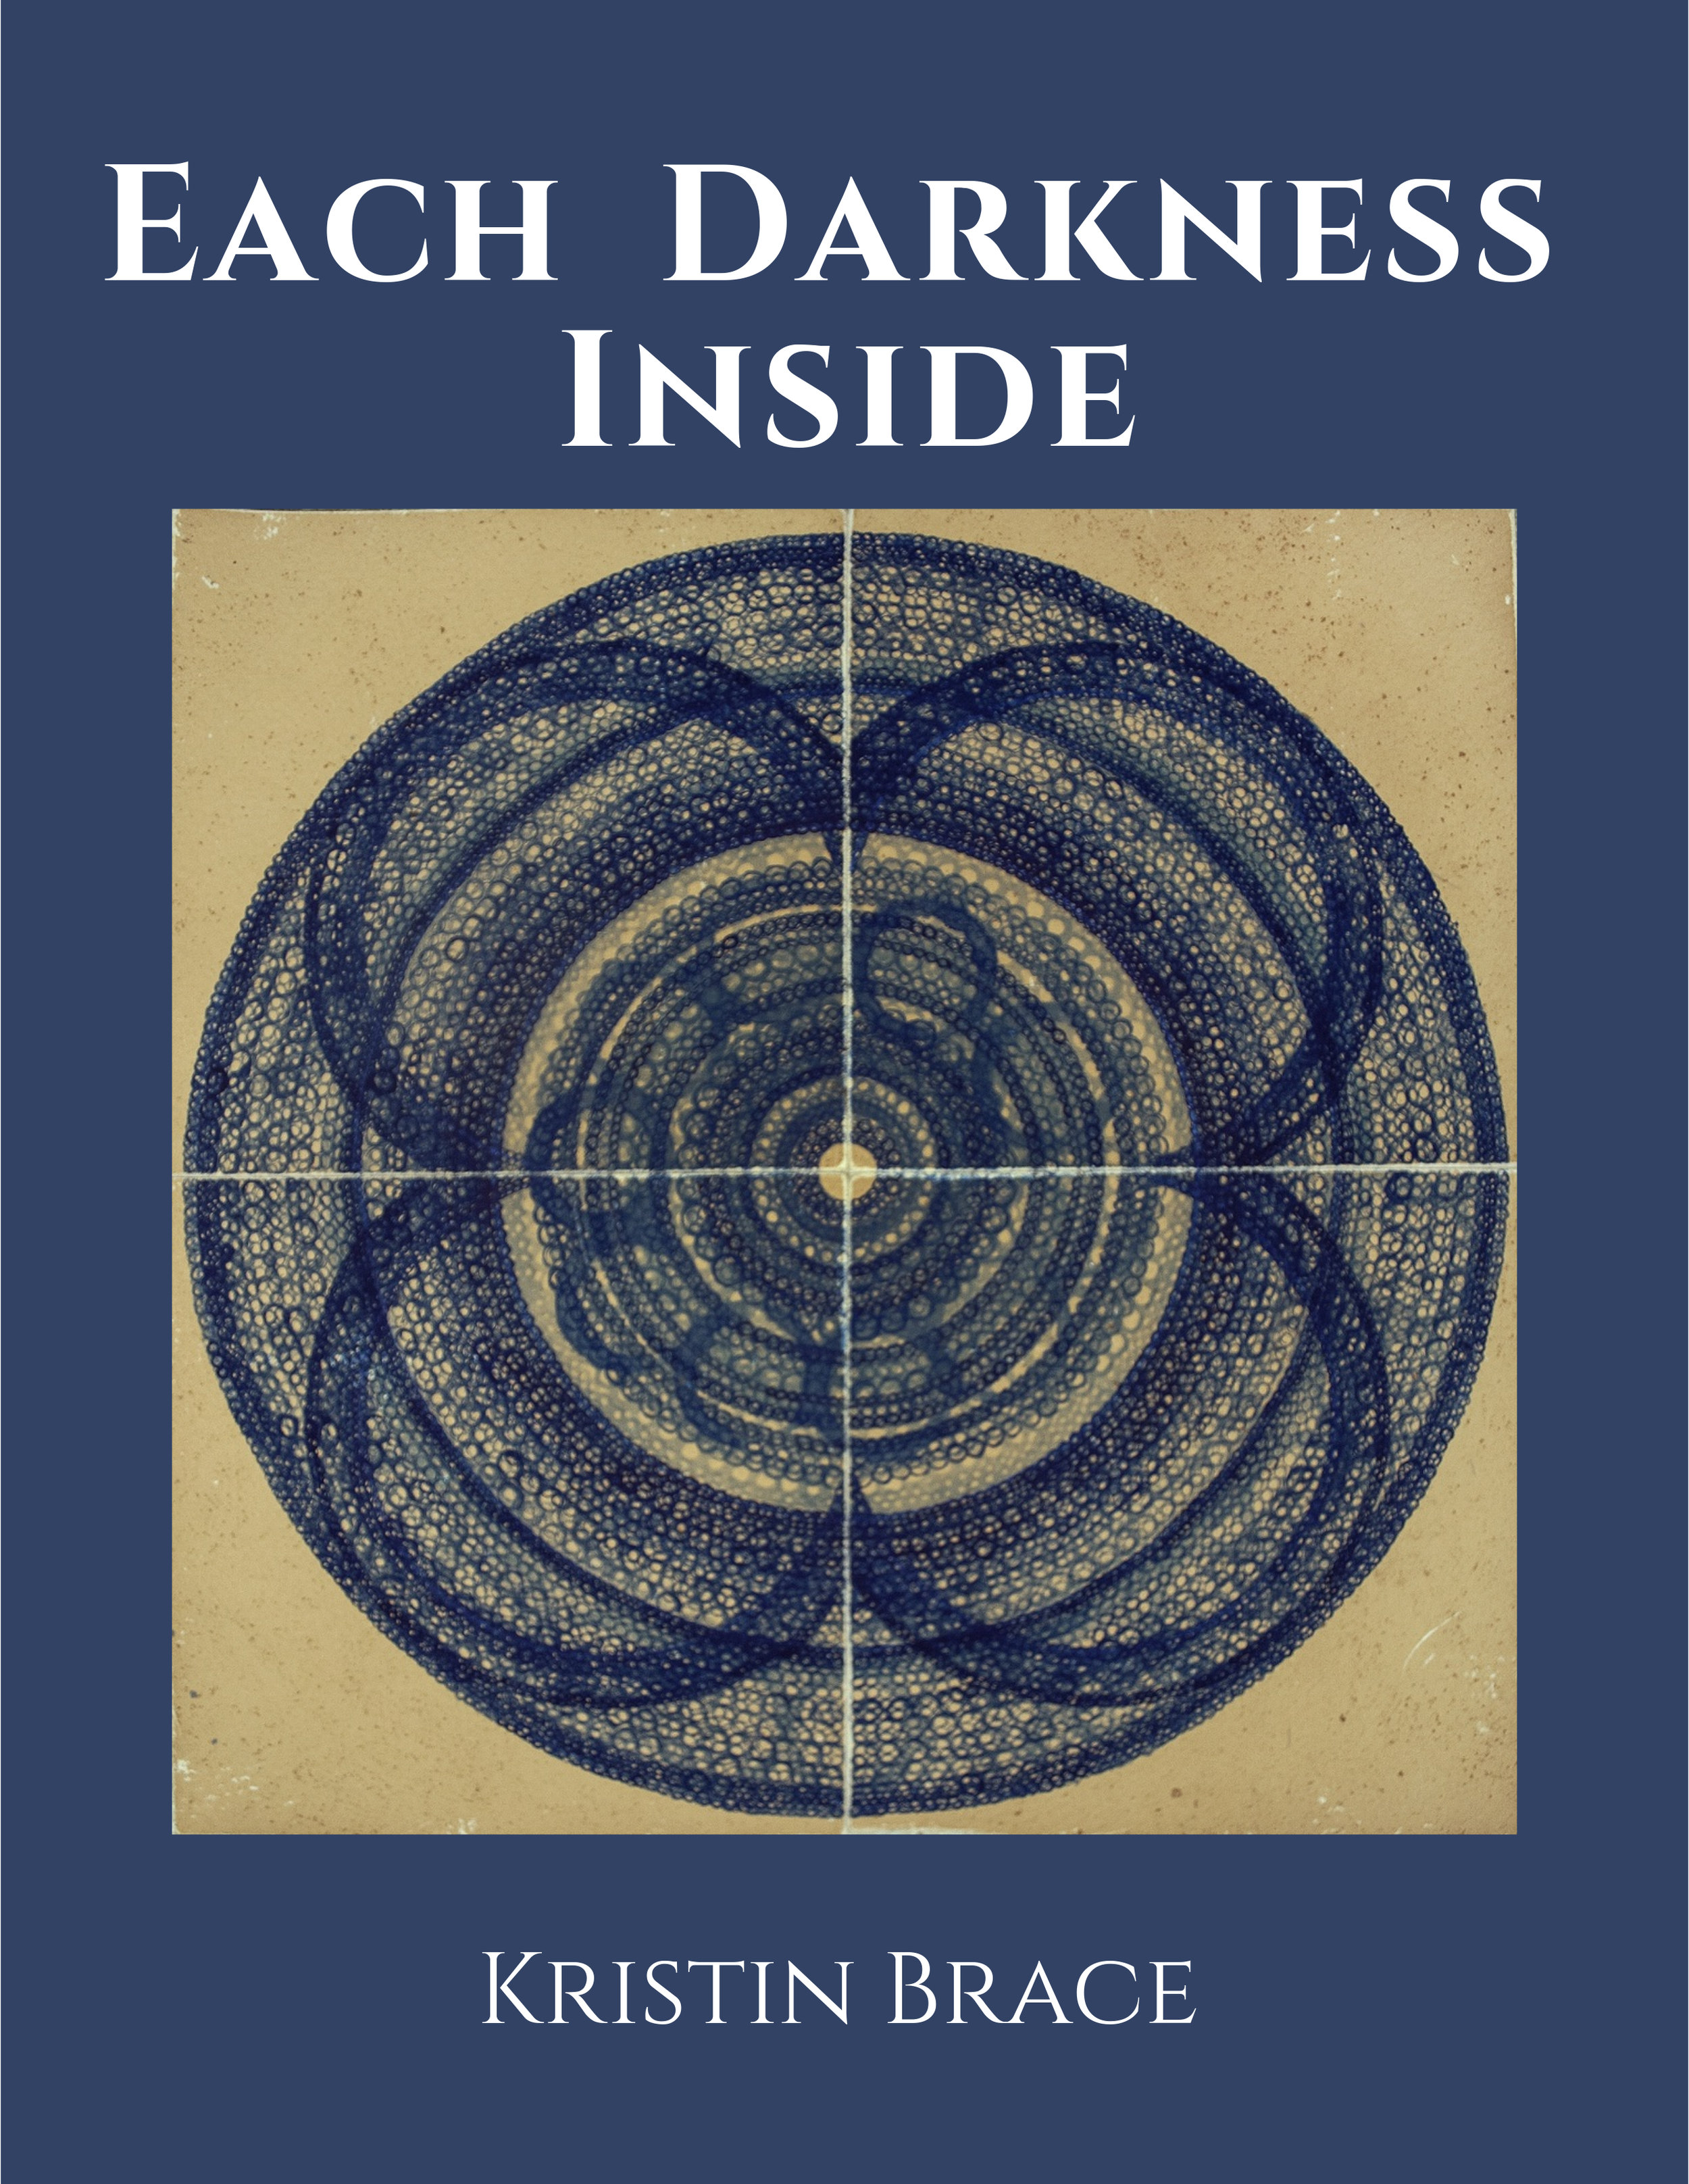 Each Darkness Inside available now - A poetry chapbook exploring the overlooked, the interior, the unspoken.Endorsements, radio interviews, and poems here.